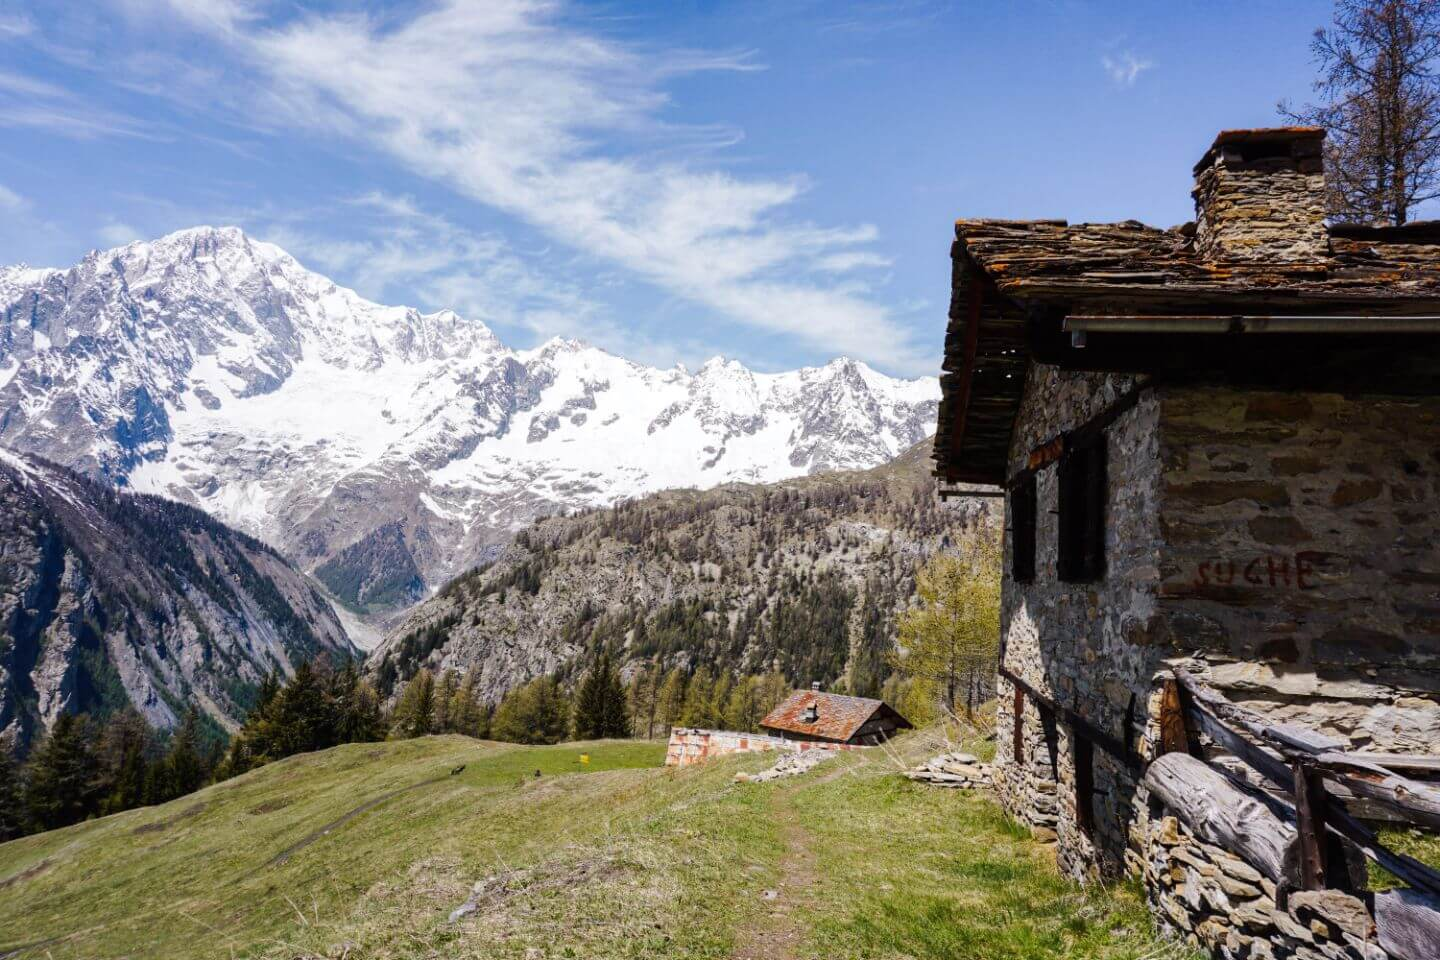 La Suche Plateau, Courmayeur Hiking Trail, Aosta Valley, Italy